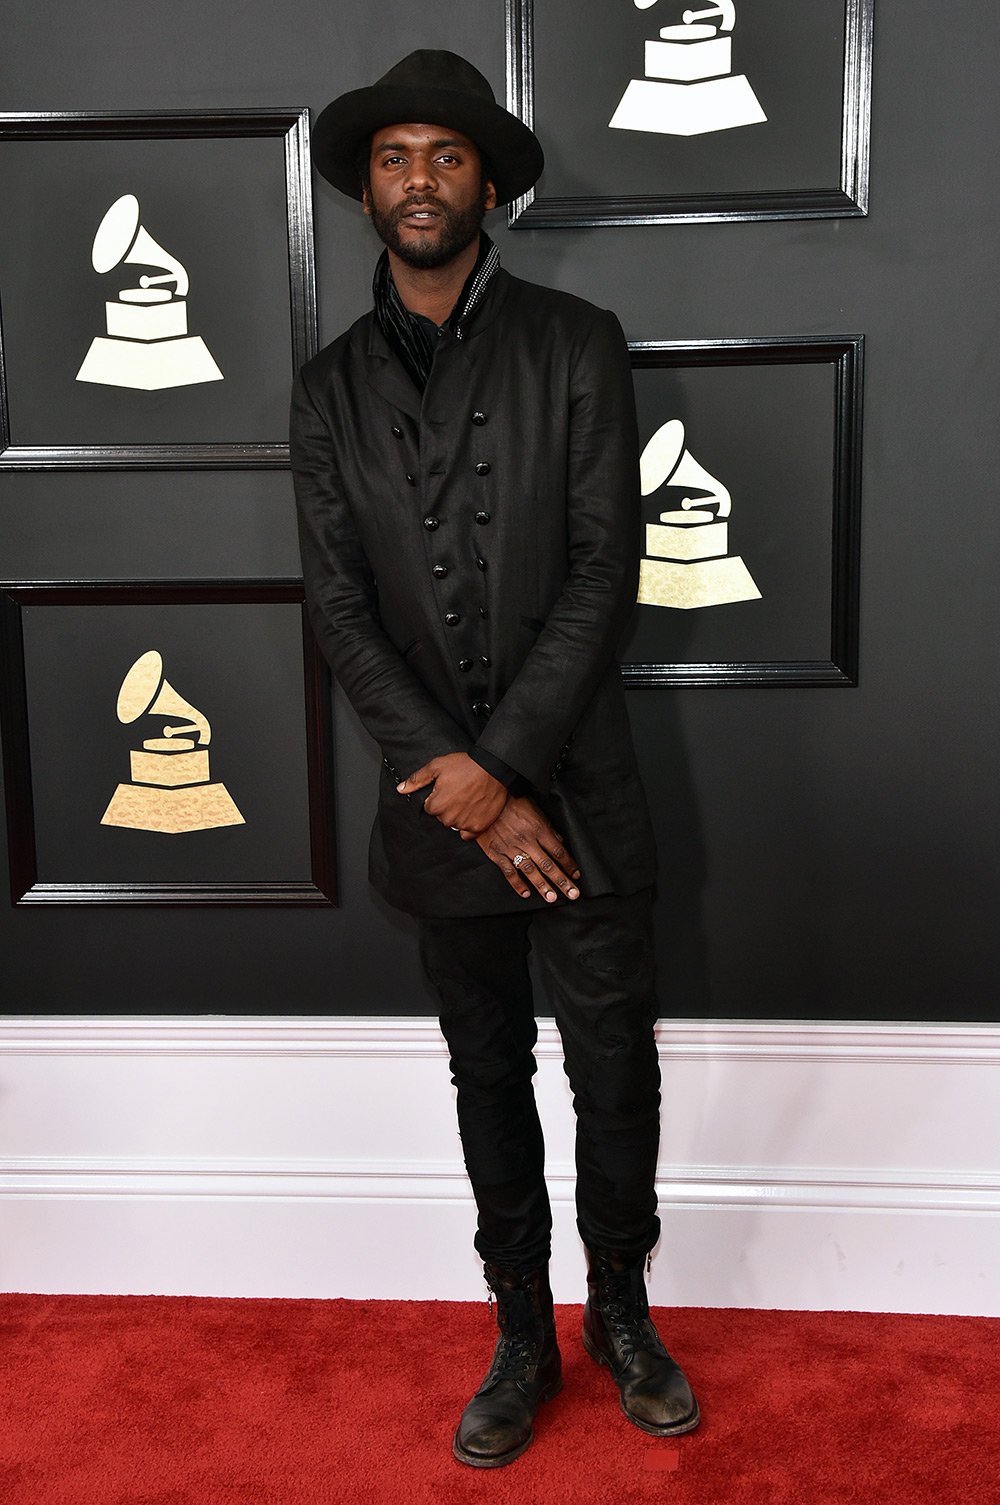 Gary Clark, Jr. kept it simple and minimal with a rocker edge in John Varvatos. The entire outfit silently screams rock n' roll in the best ways possible.